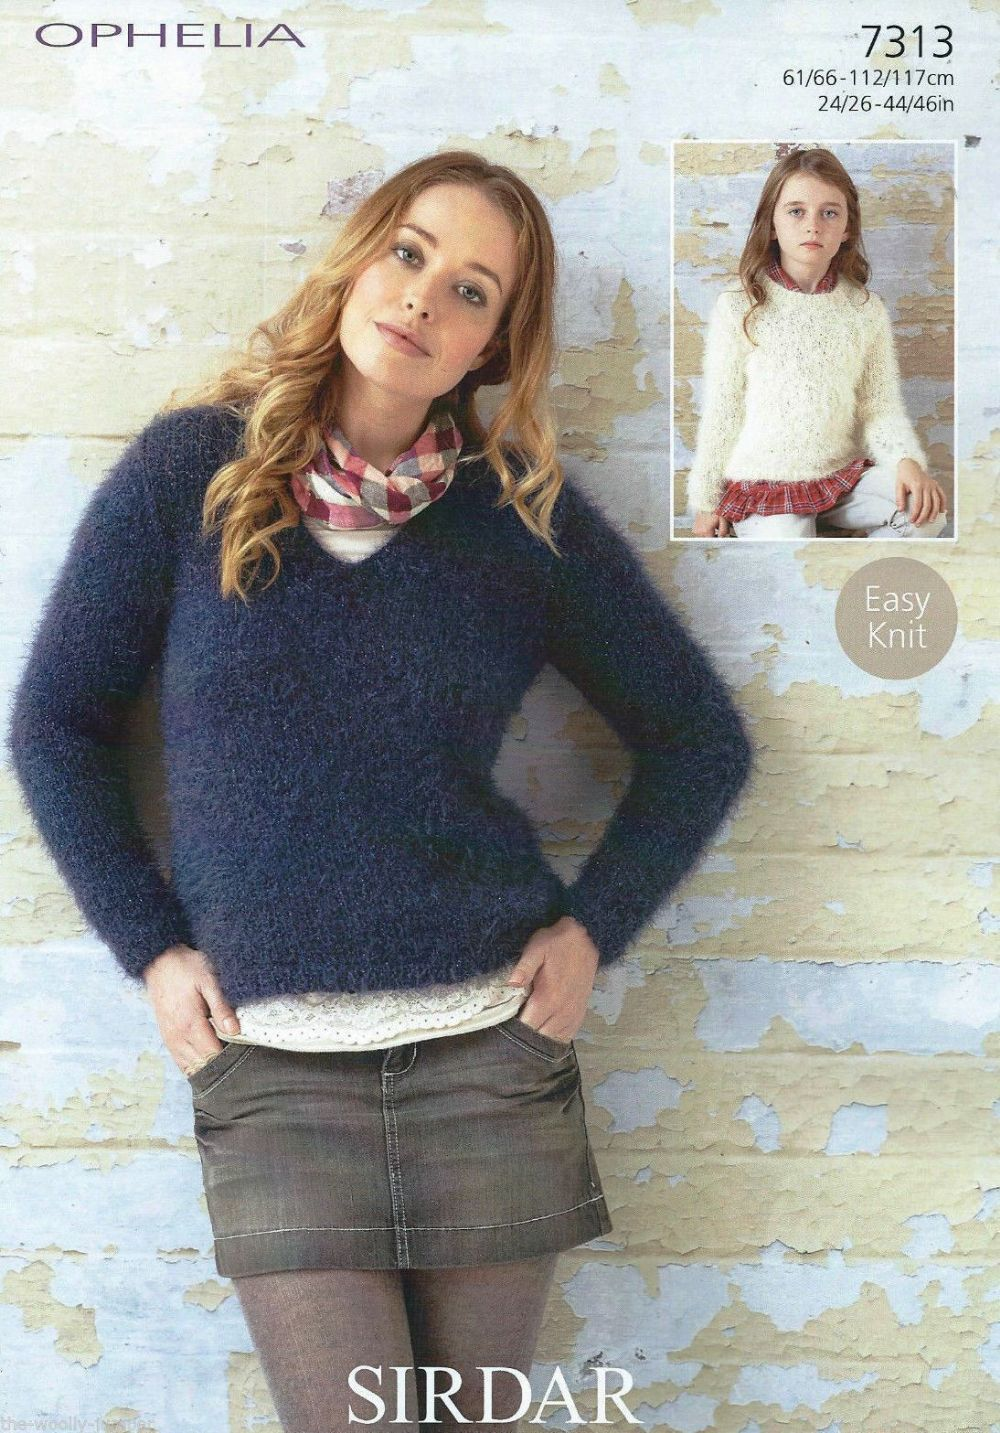 7313 Sirdar Ophelia Chunky Easy Knit Sweater Knitting Pattern To